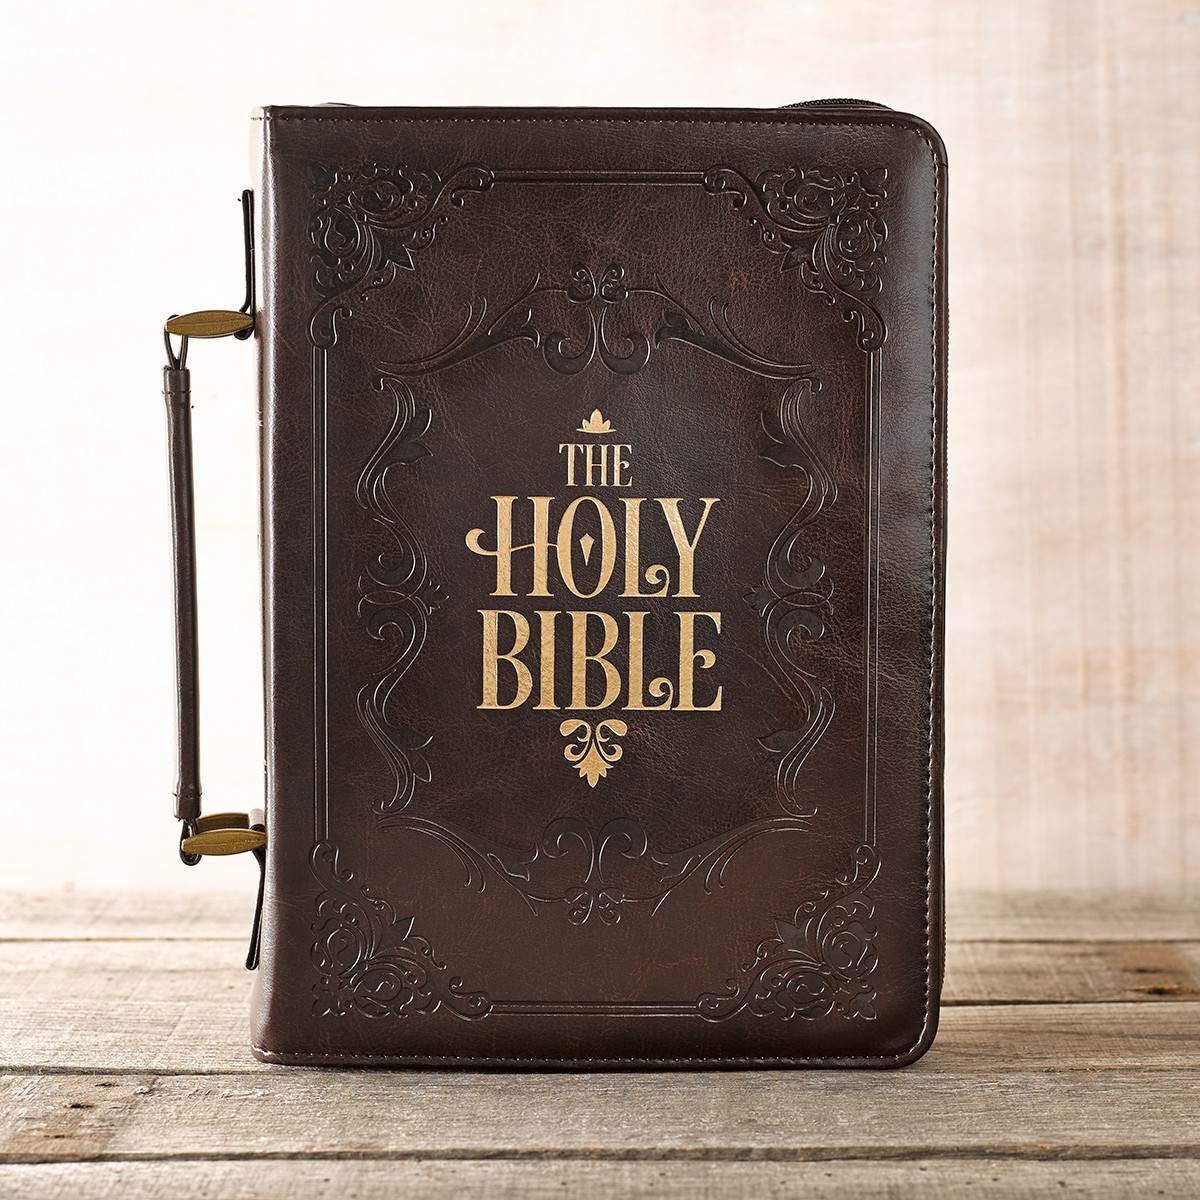 the holy bible Holy bible definition, bible(def 1) see more.